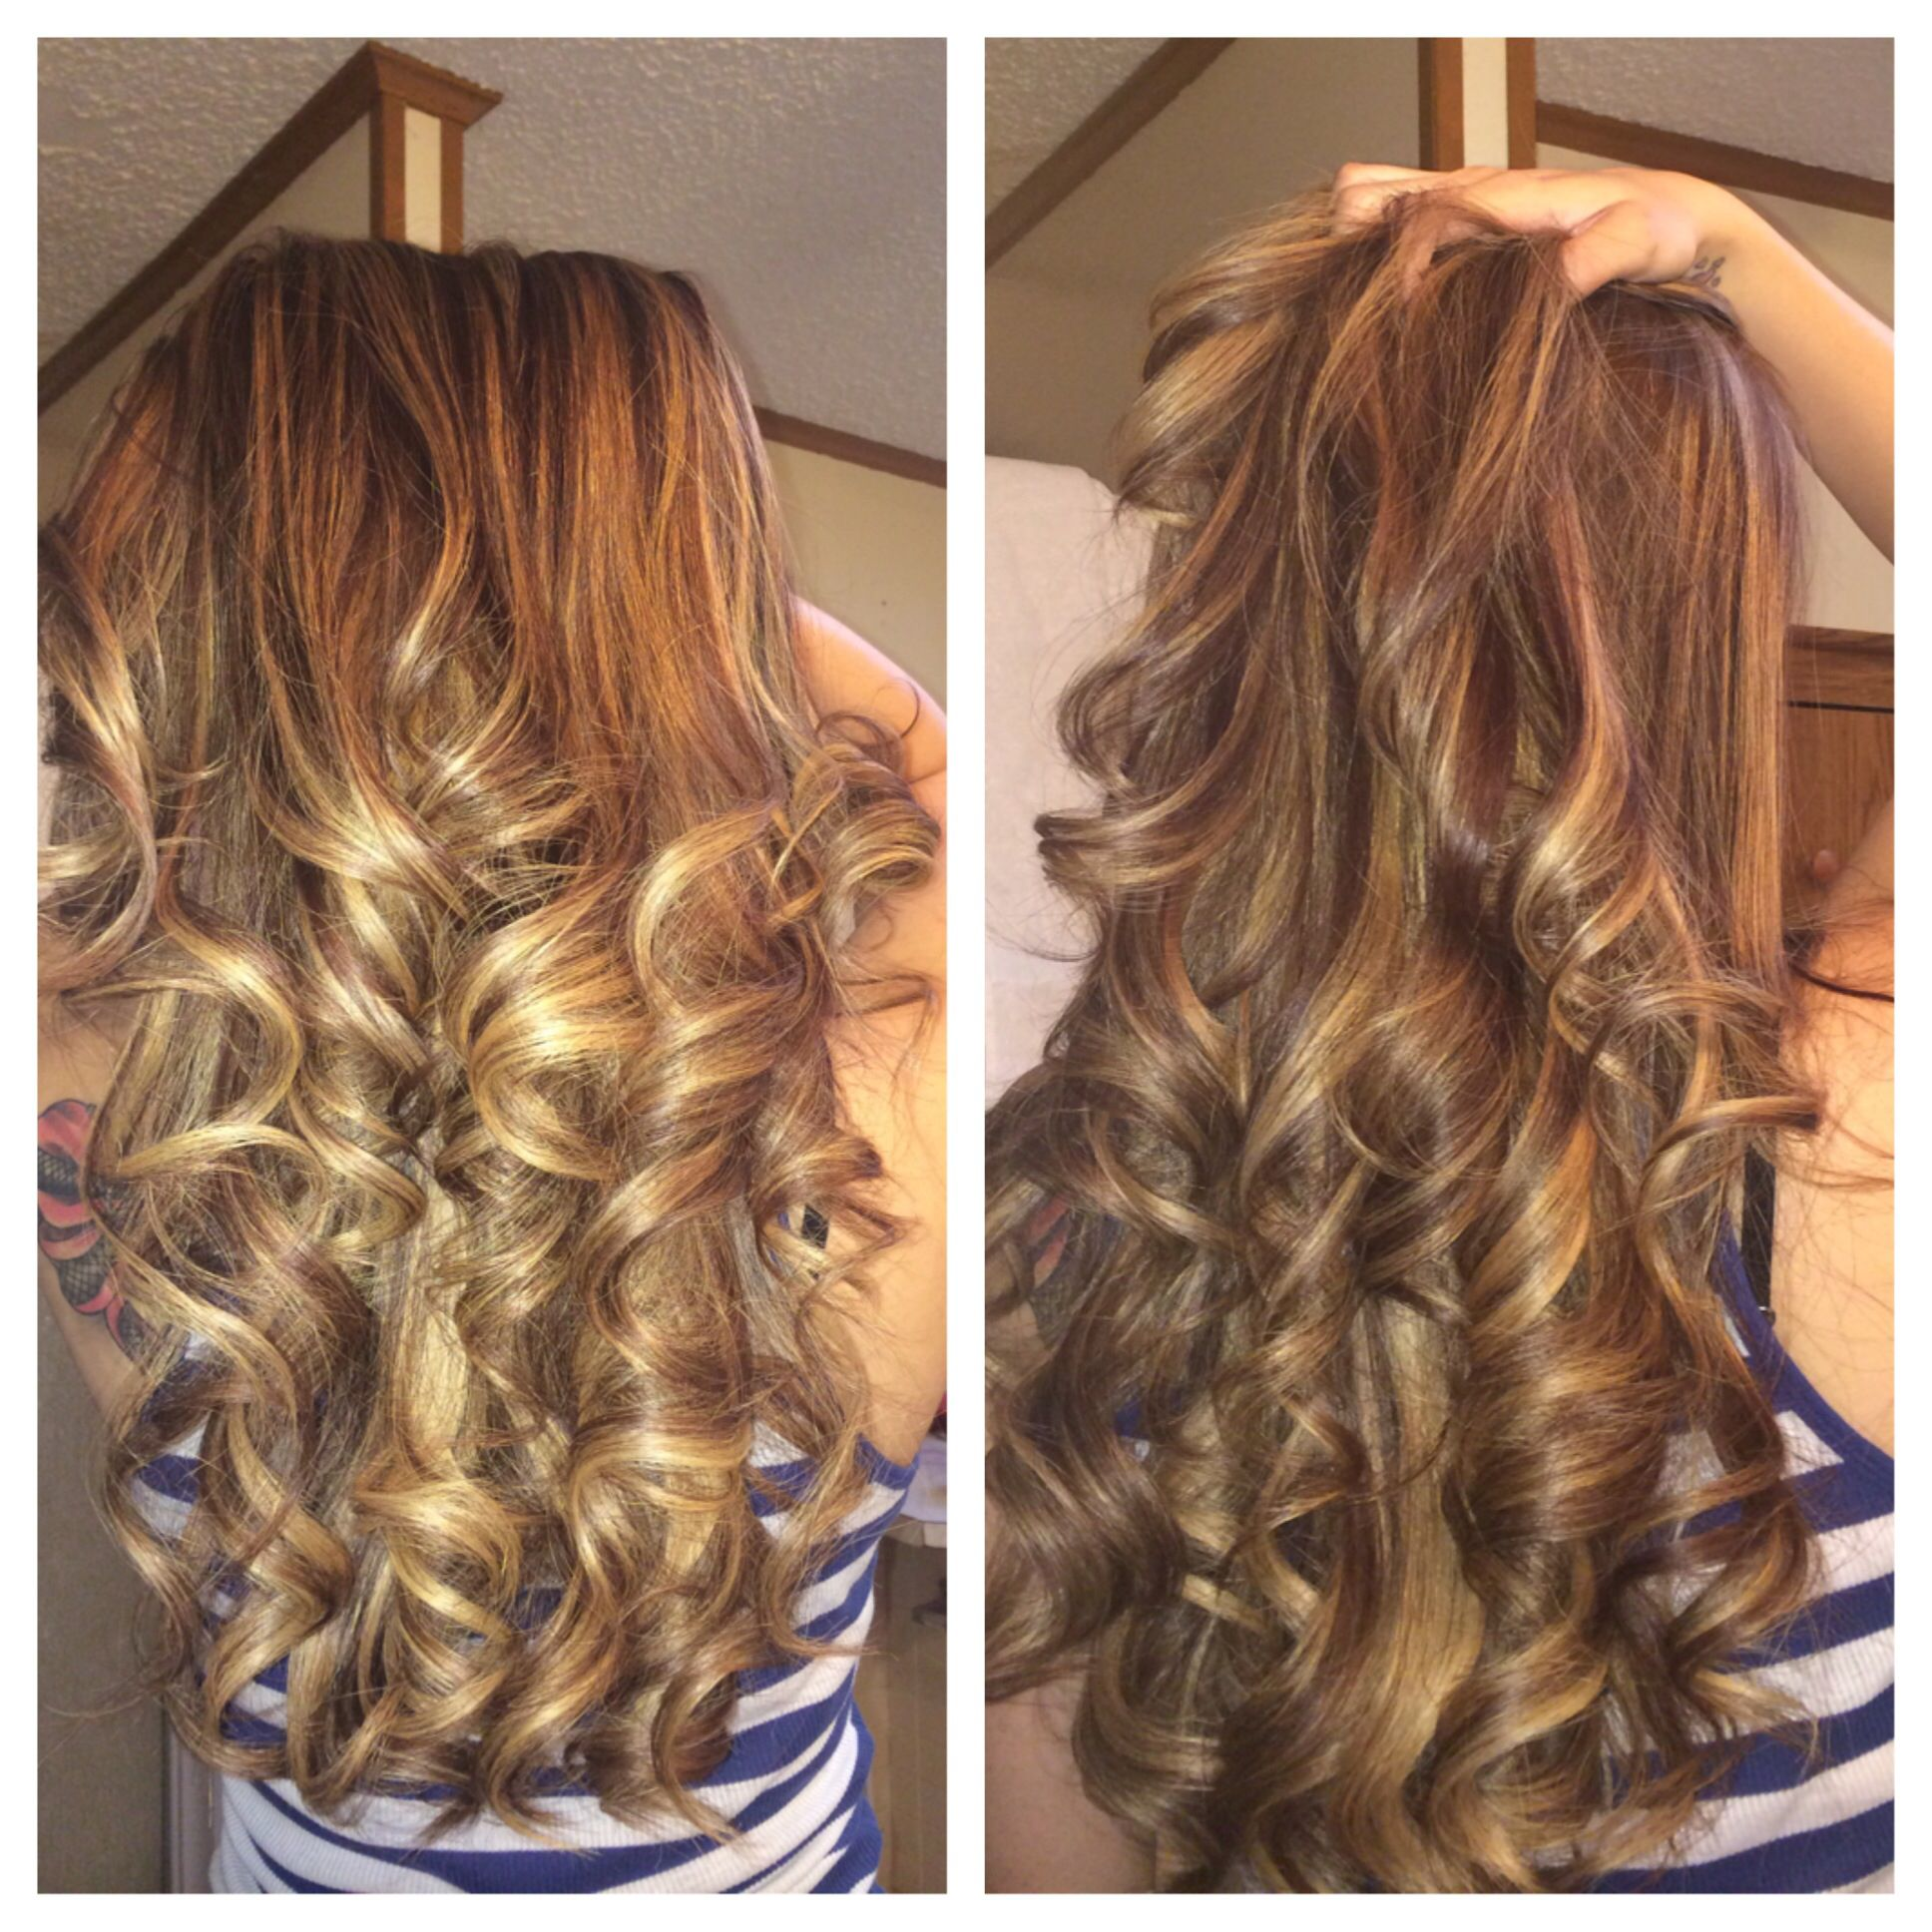 My Hair Color For Spring And Summer 2014 Done At Bombshell Salon Absolutely Love These Girls Work Carmel H Hair Inspo Color Carmel Hair Spring Hair Color